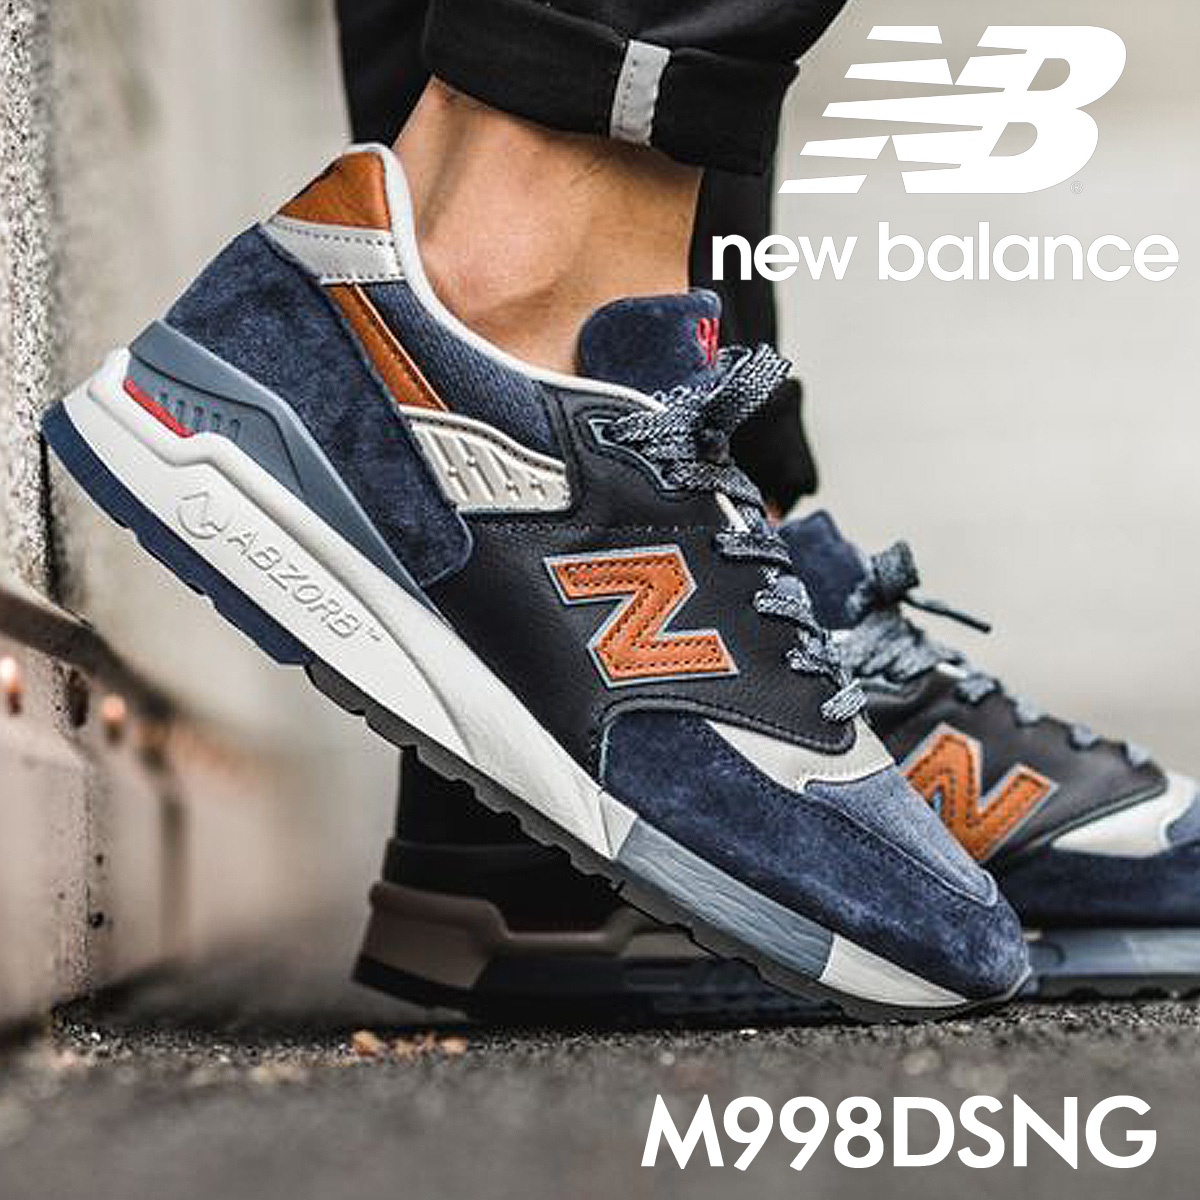 new balance 998 men's New Balance sneakers M998DSNG D Wise MADE IN USA  shoes navy